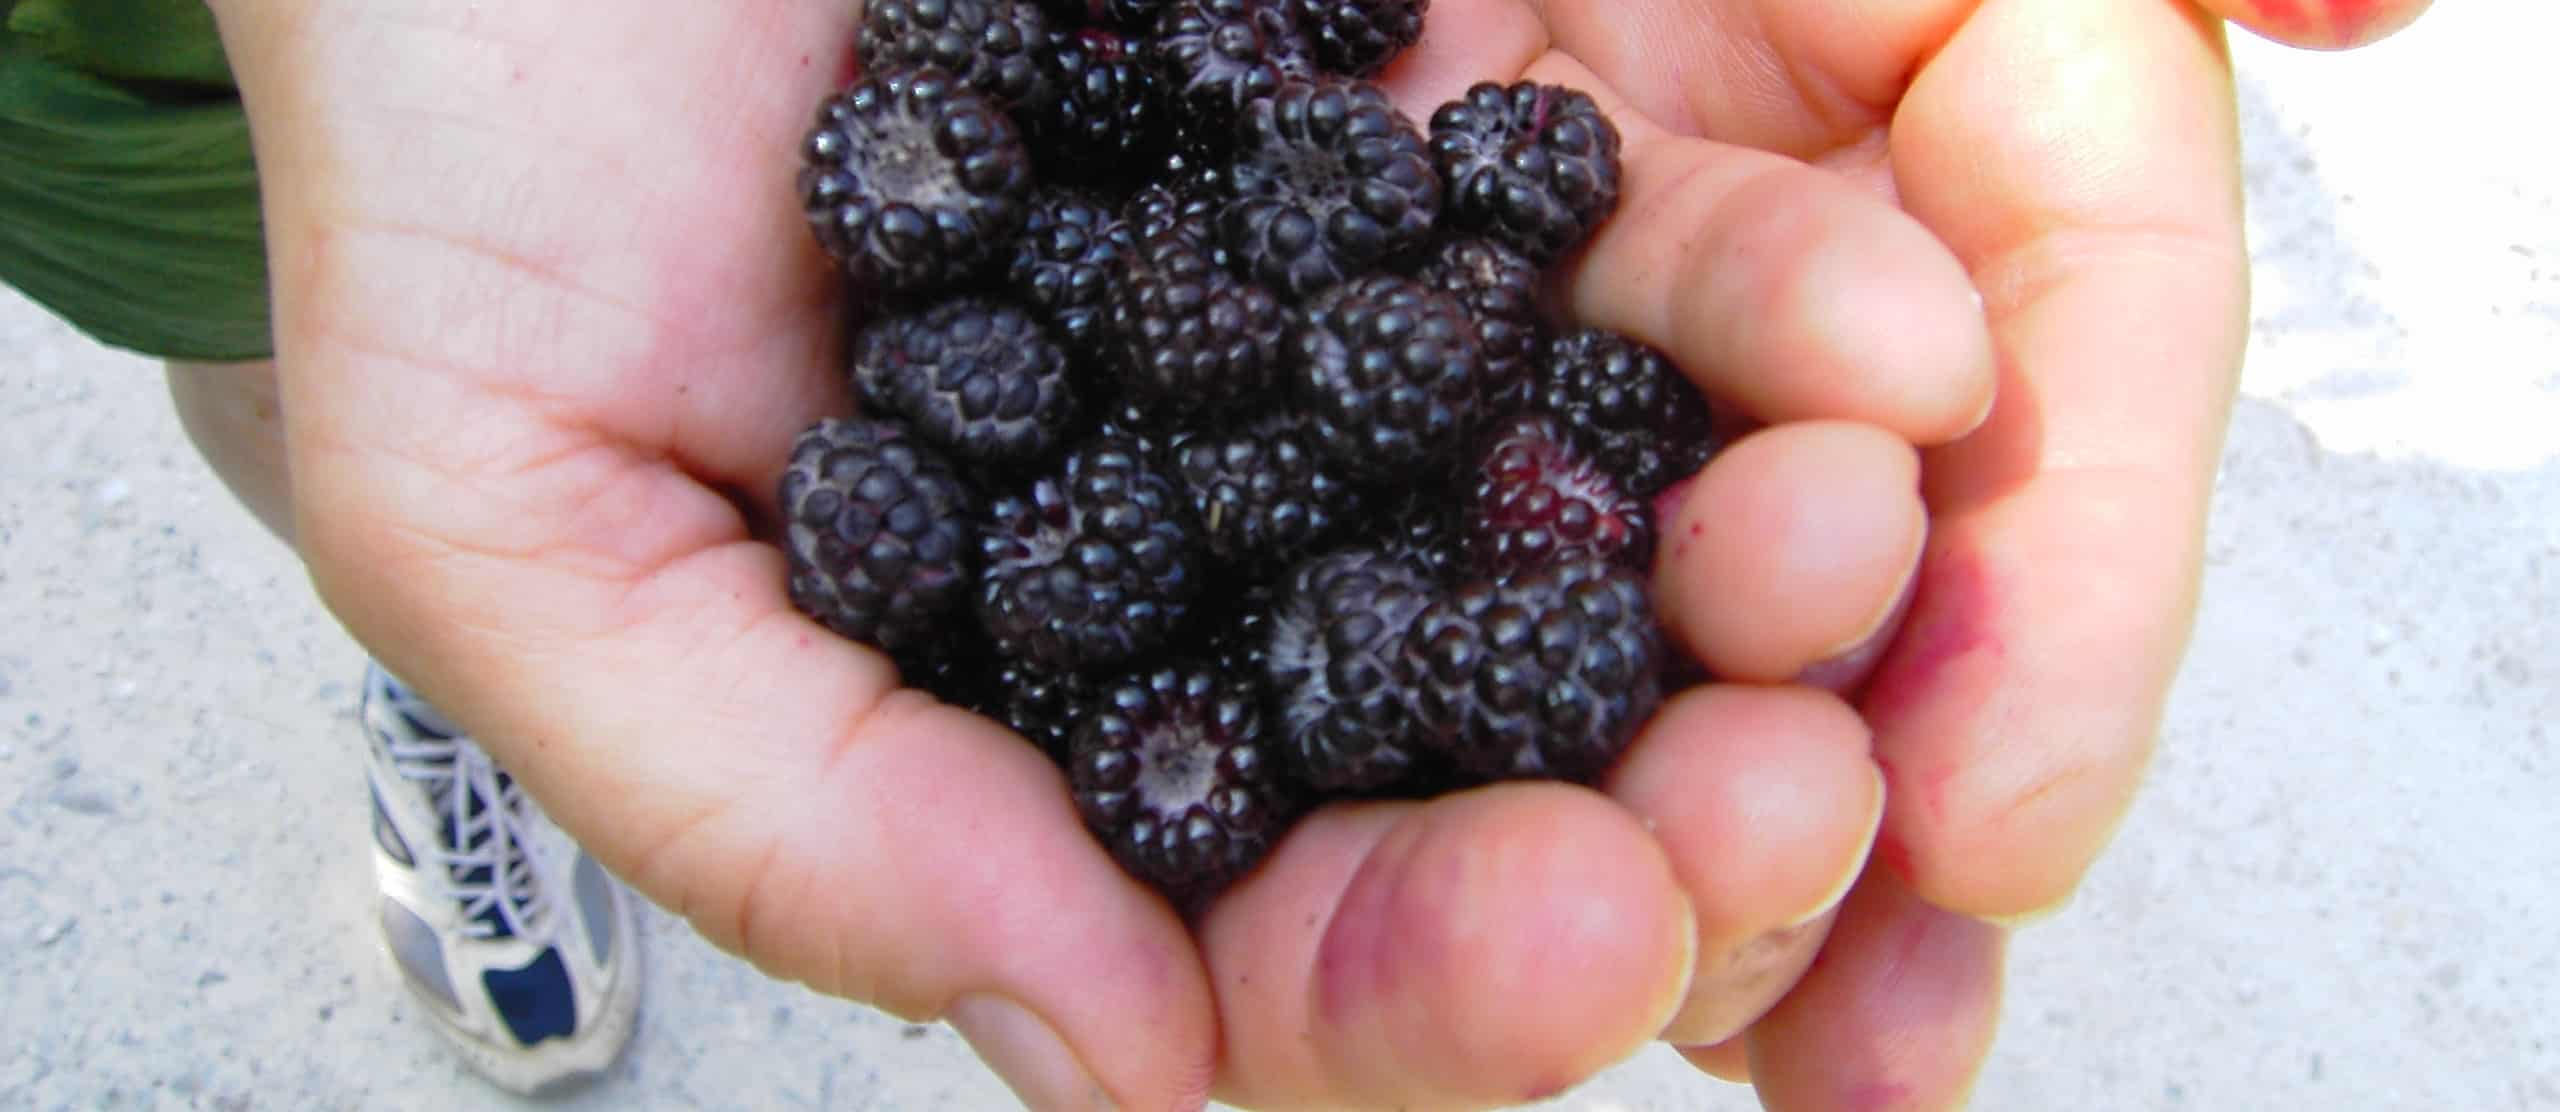 Reducing Muscle Soreness with Berries